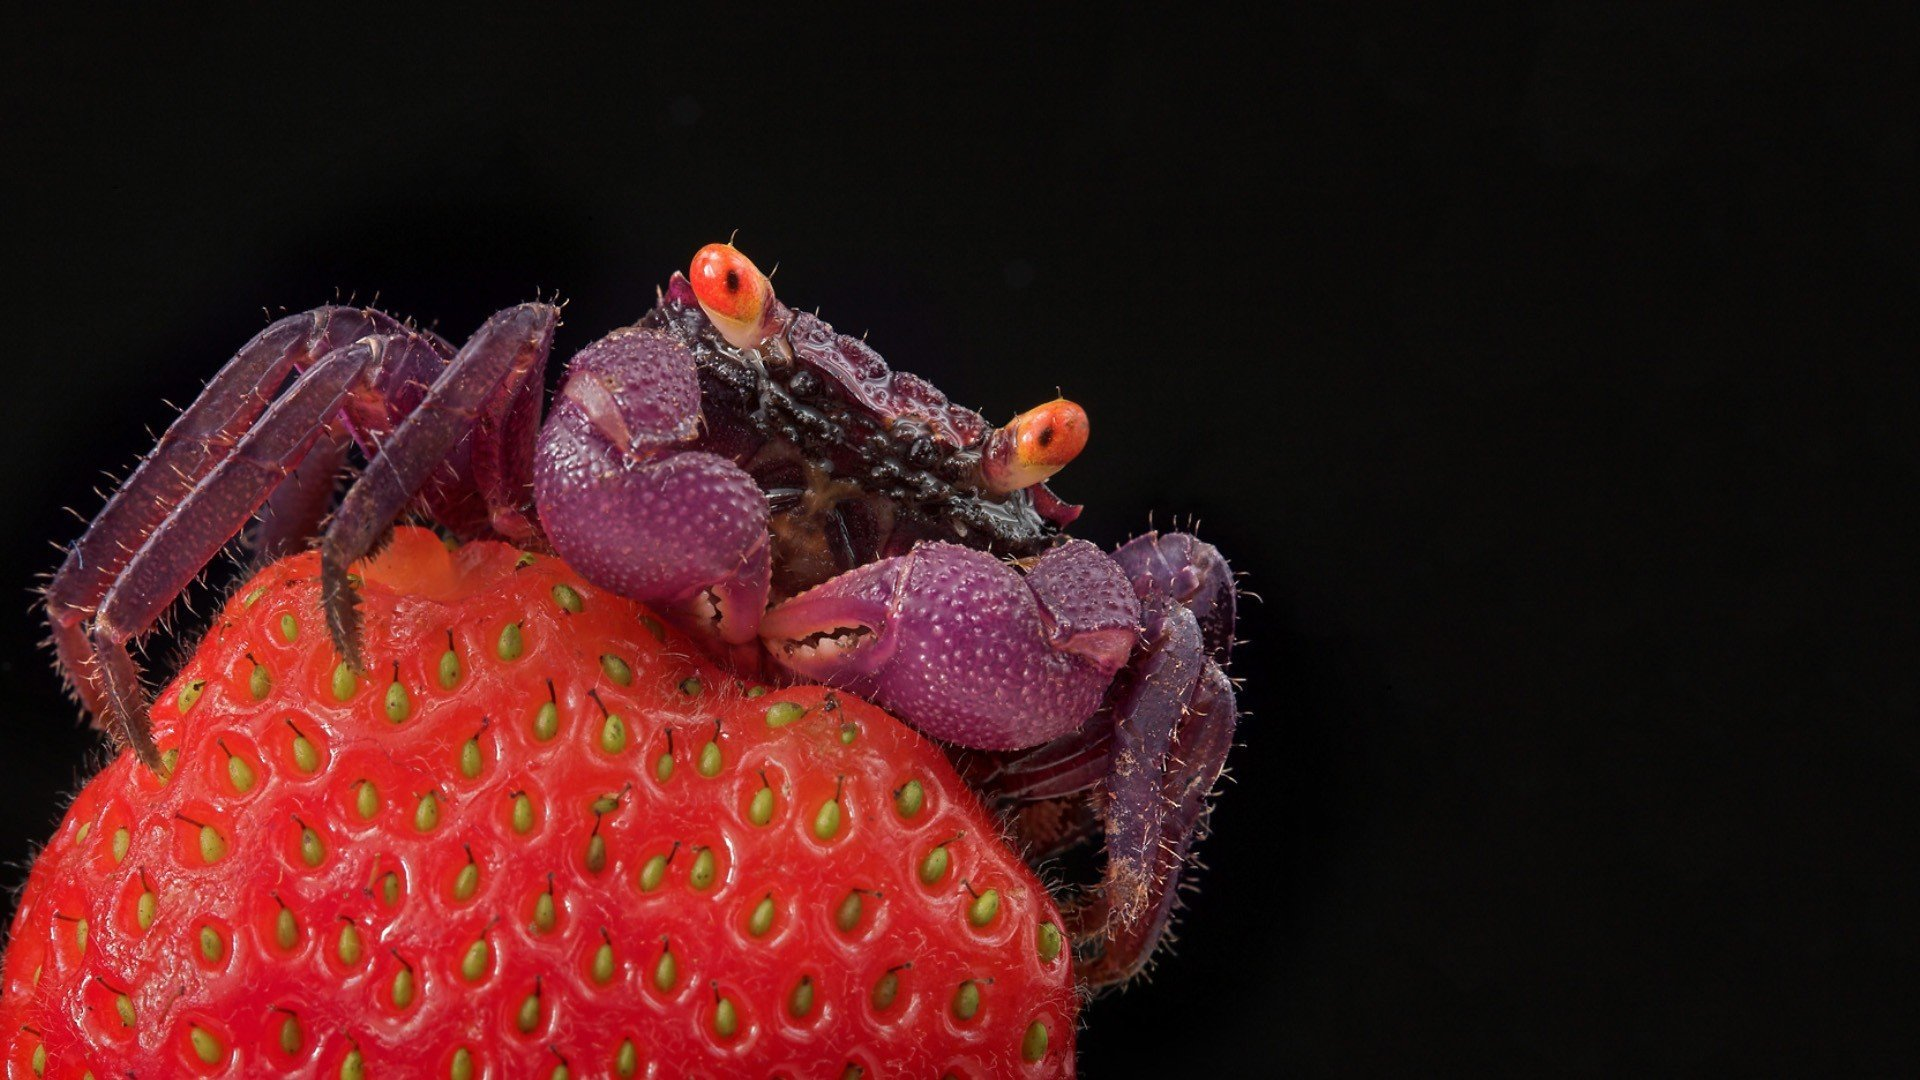 Download full hd 1080p Crab computer wallpaper ID:294299 for free